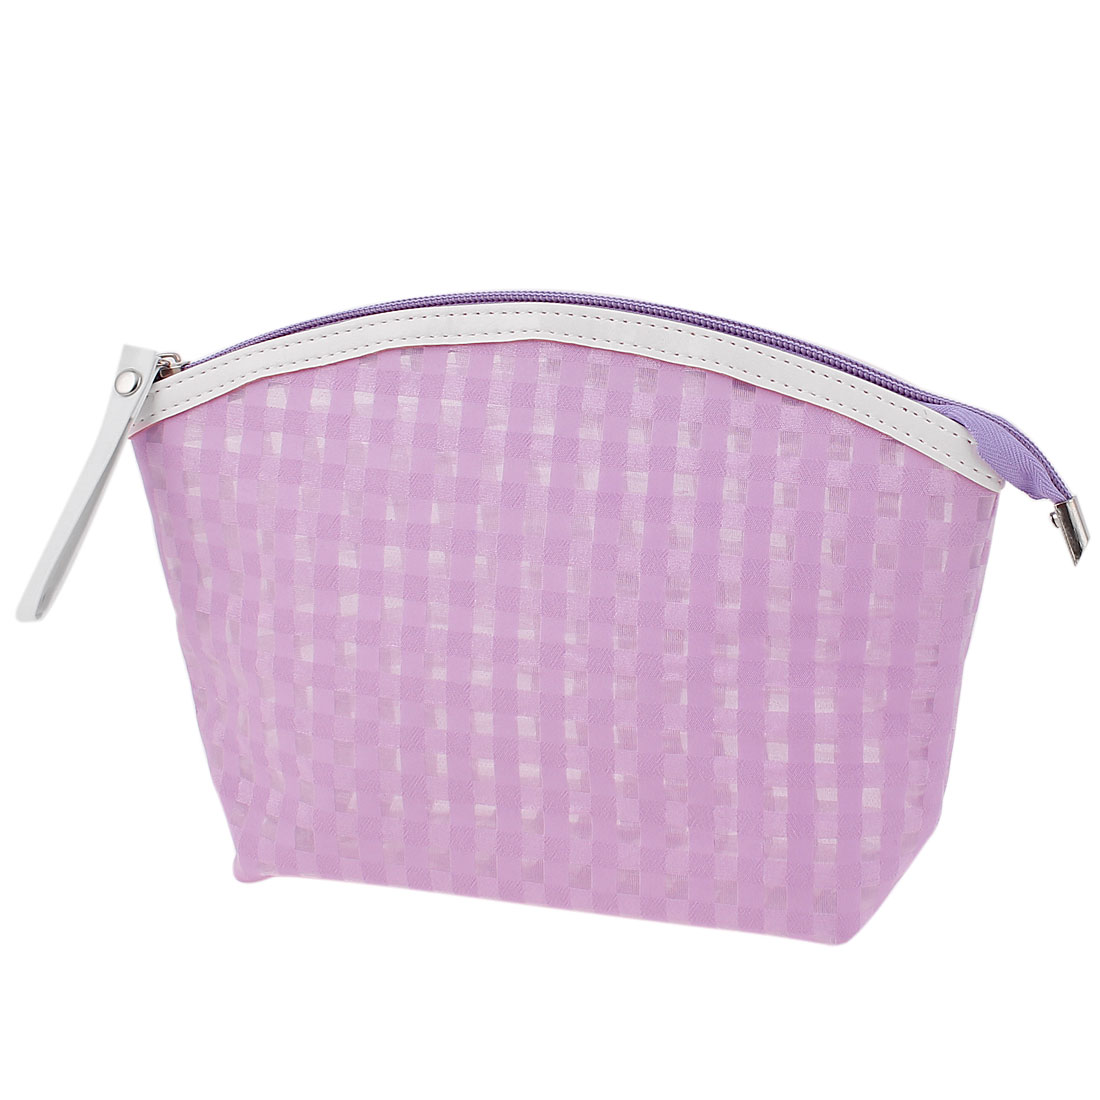 Travel Portable Zipper Closure Checks Pattern PVC Cosmetic Makeup Bag Toiletries Key Change Card Holder Lavender for Lady